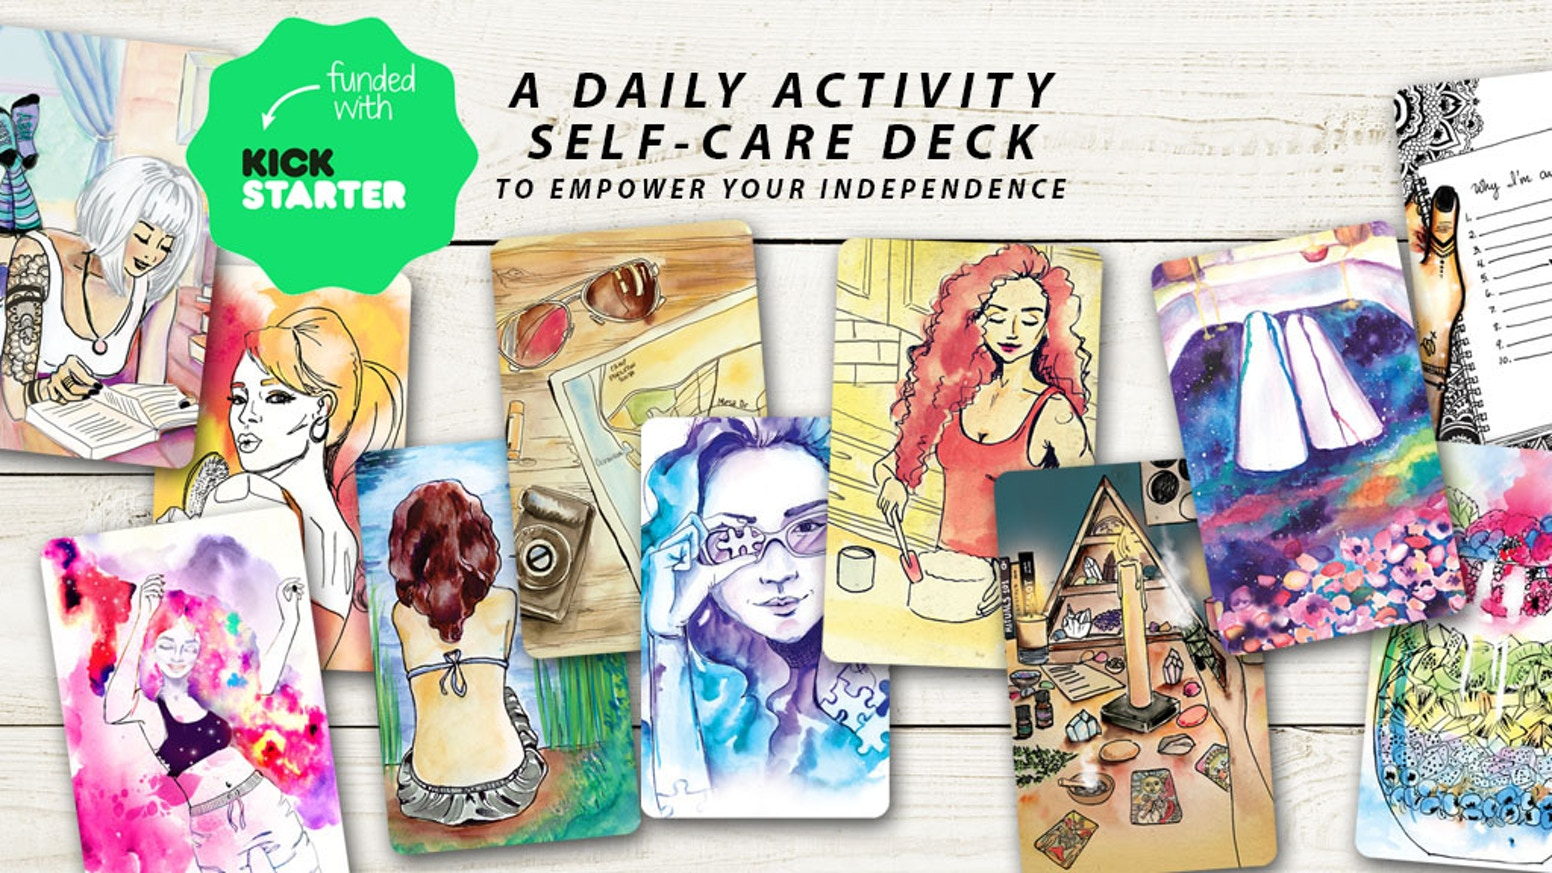 A daily self-care activity deck. Can be used with tarot or oracle readings. Empower your independence and feel happier.